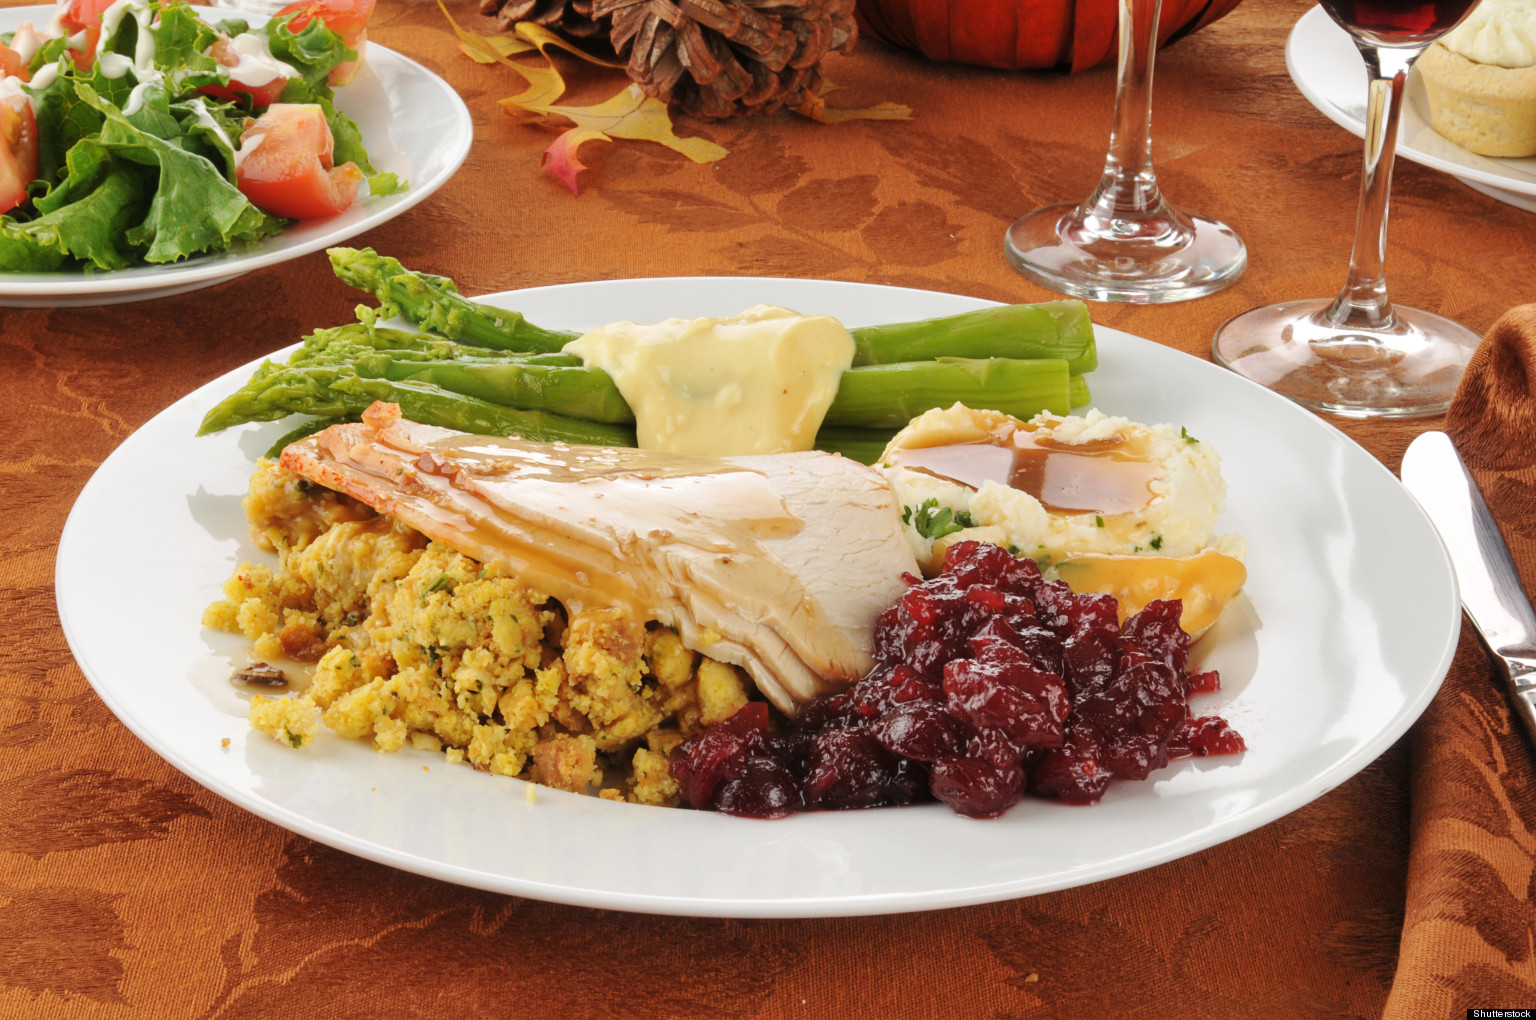 It is hard to picture a holiday feast without the turkey. Whether you are thinking about Thanksgiving or Christmas, turkey is a staple food during certain times of the year.